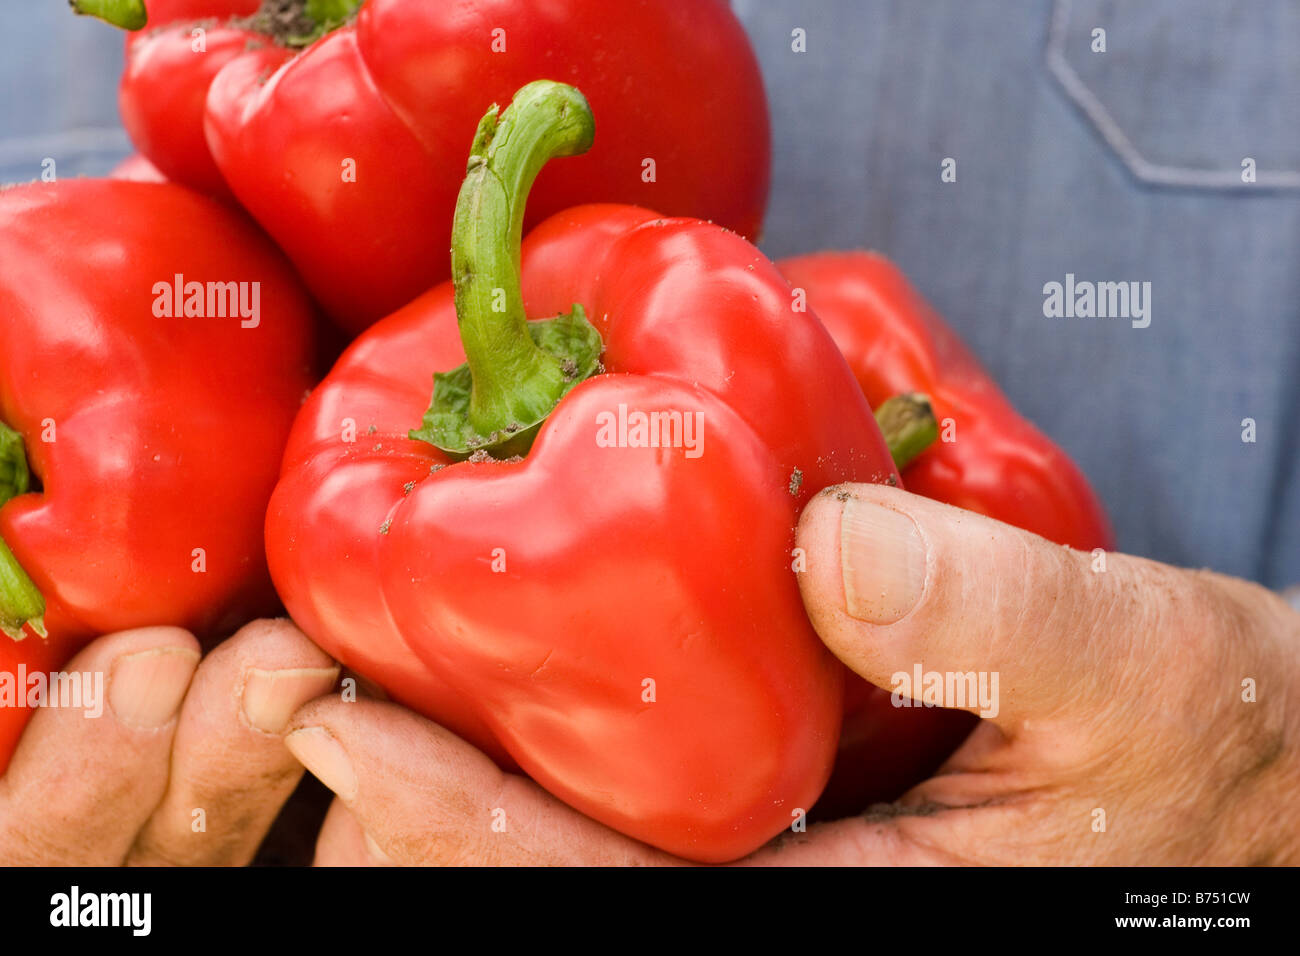 Human hands holding red bell peppers, close-up - Stock Image